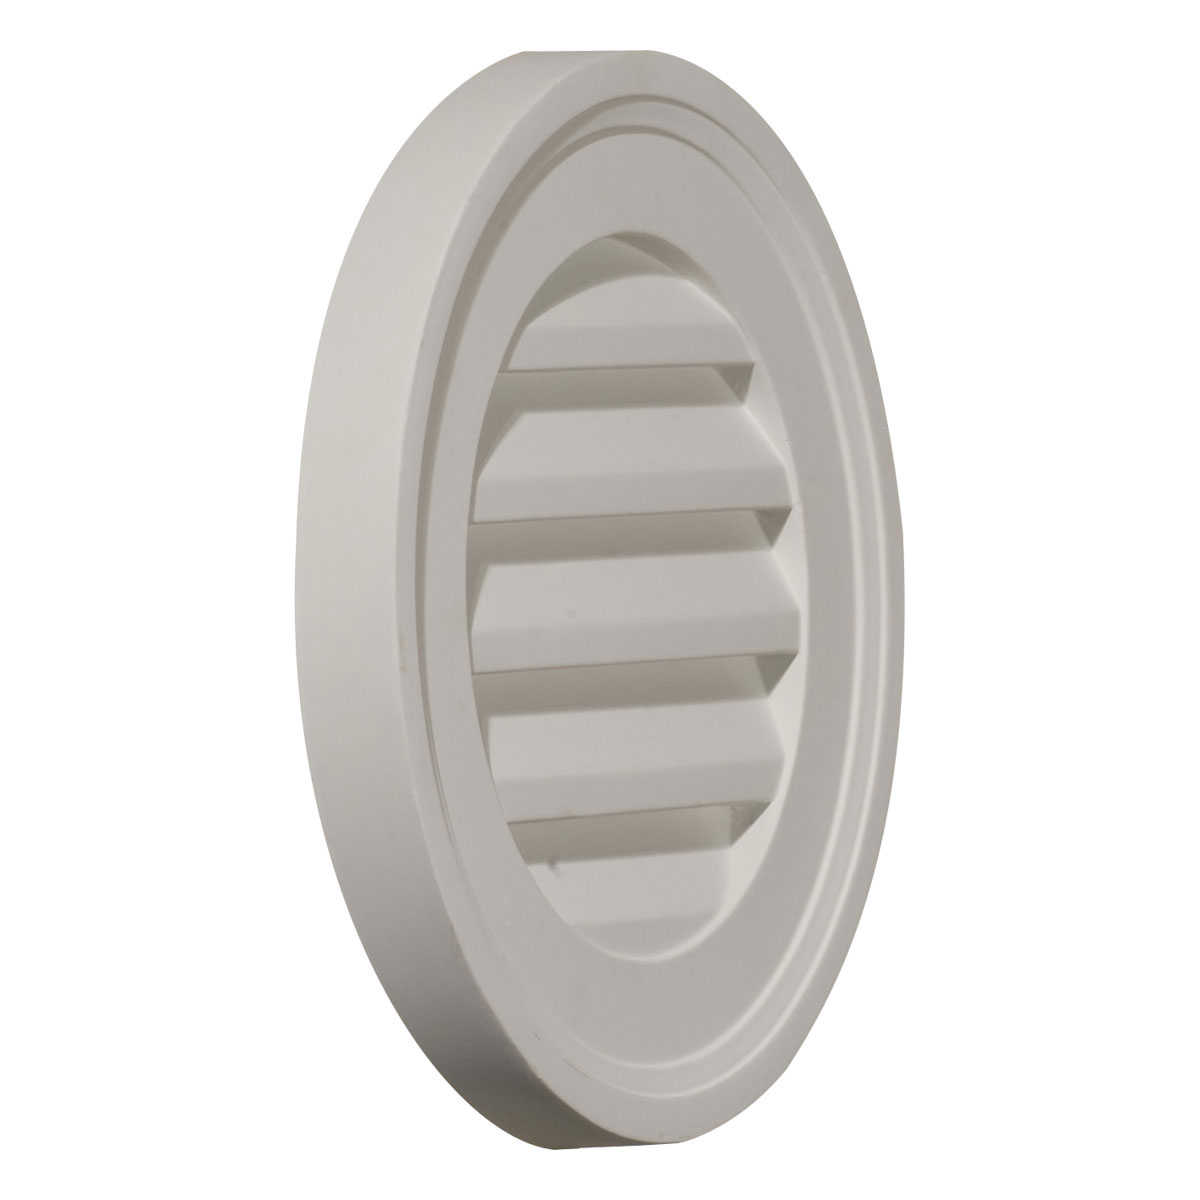 12'W x 12'H x 1 3/8'P, Round Gable Vent Louver, Decorative